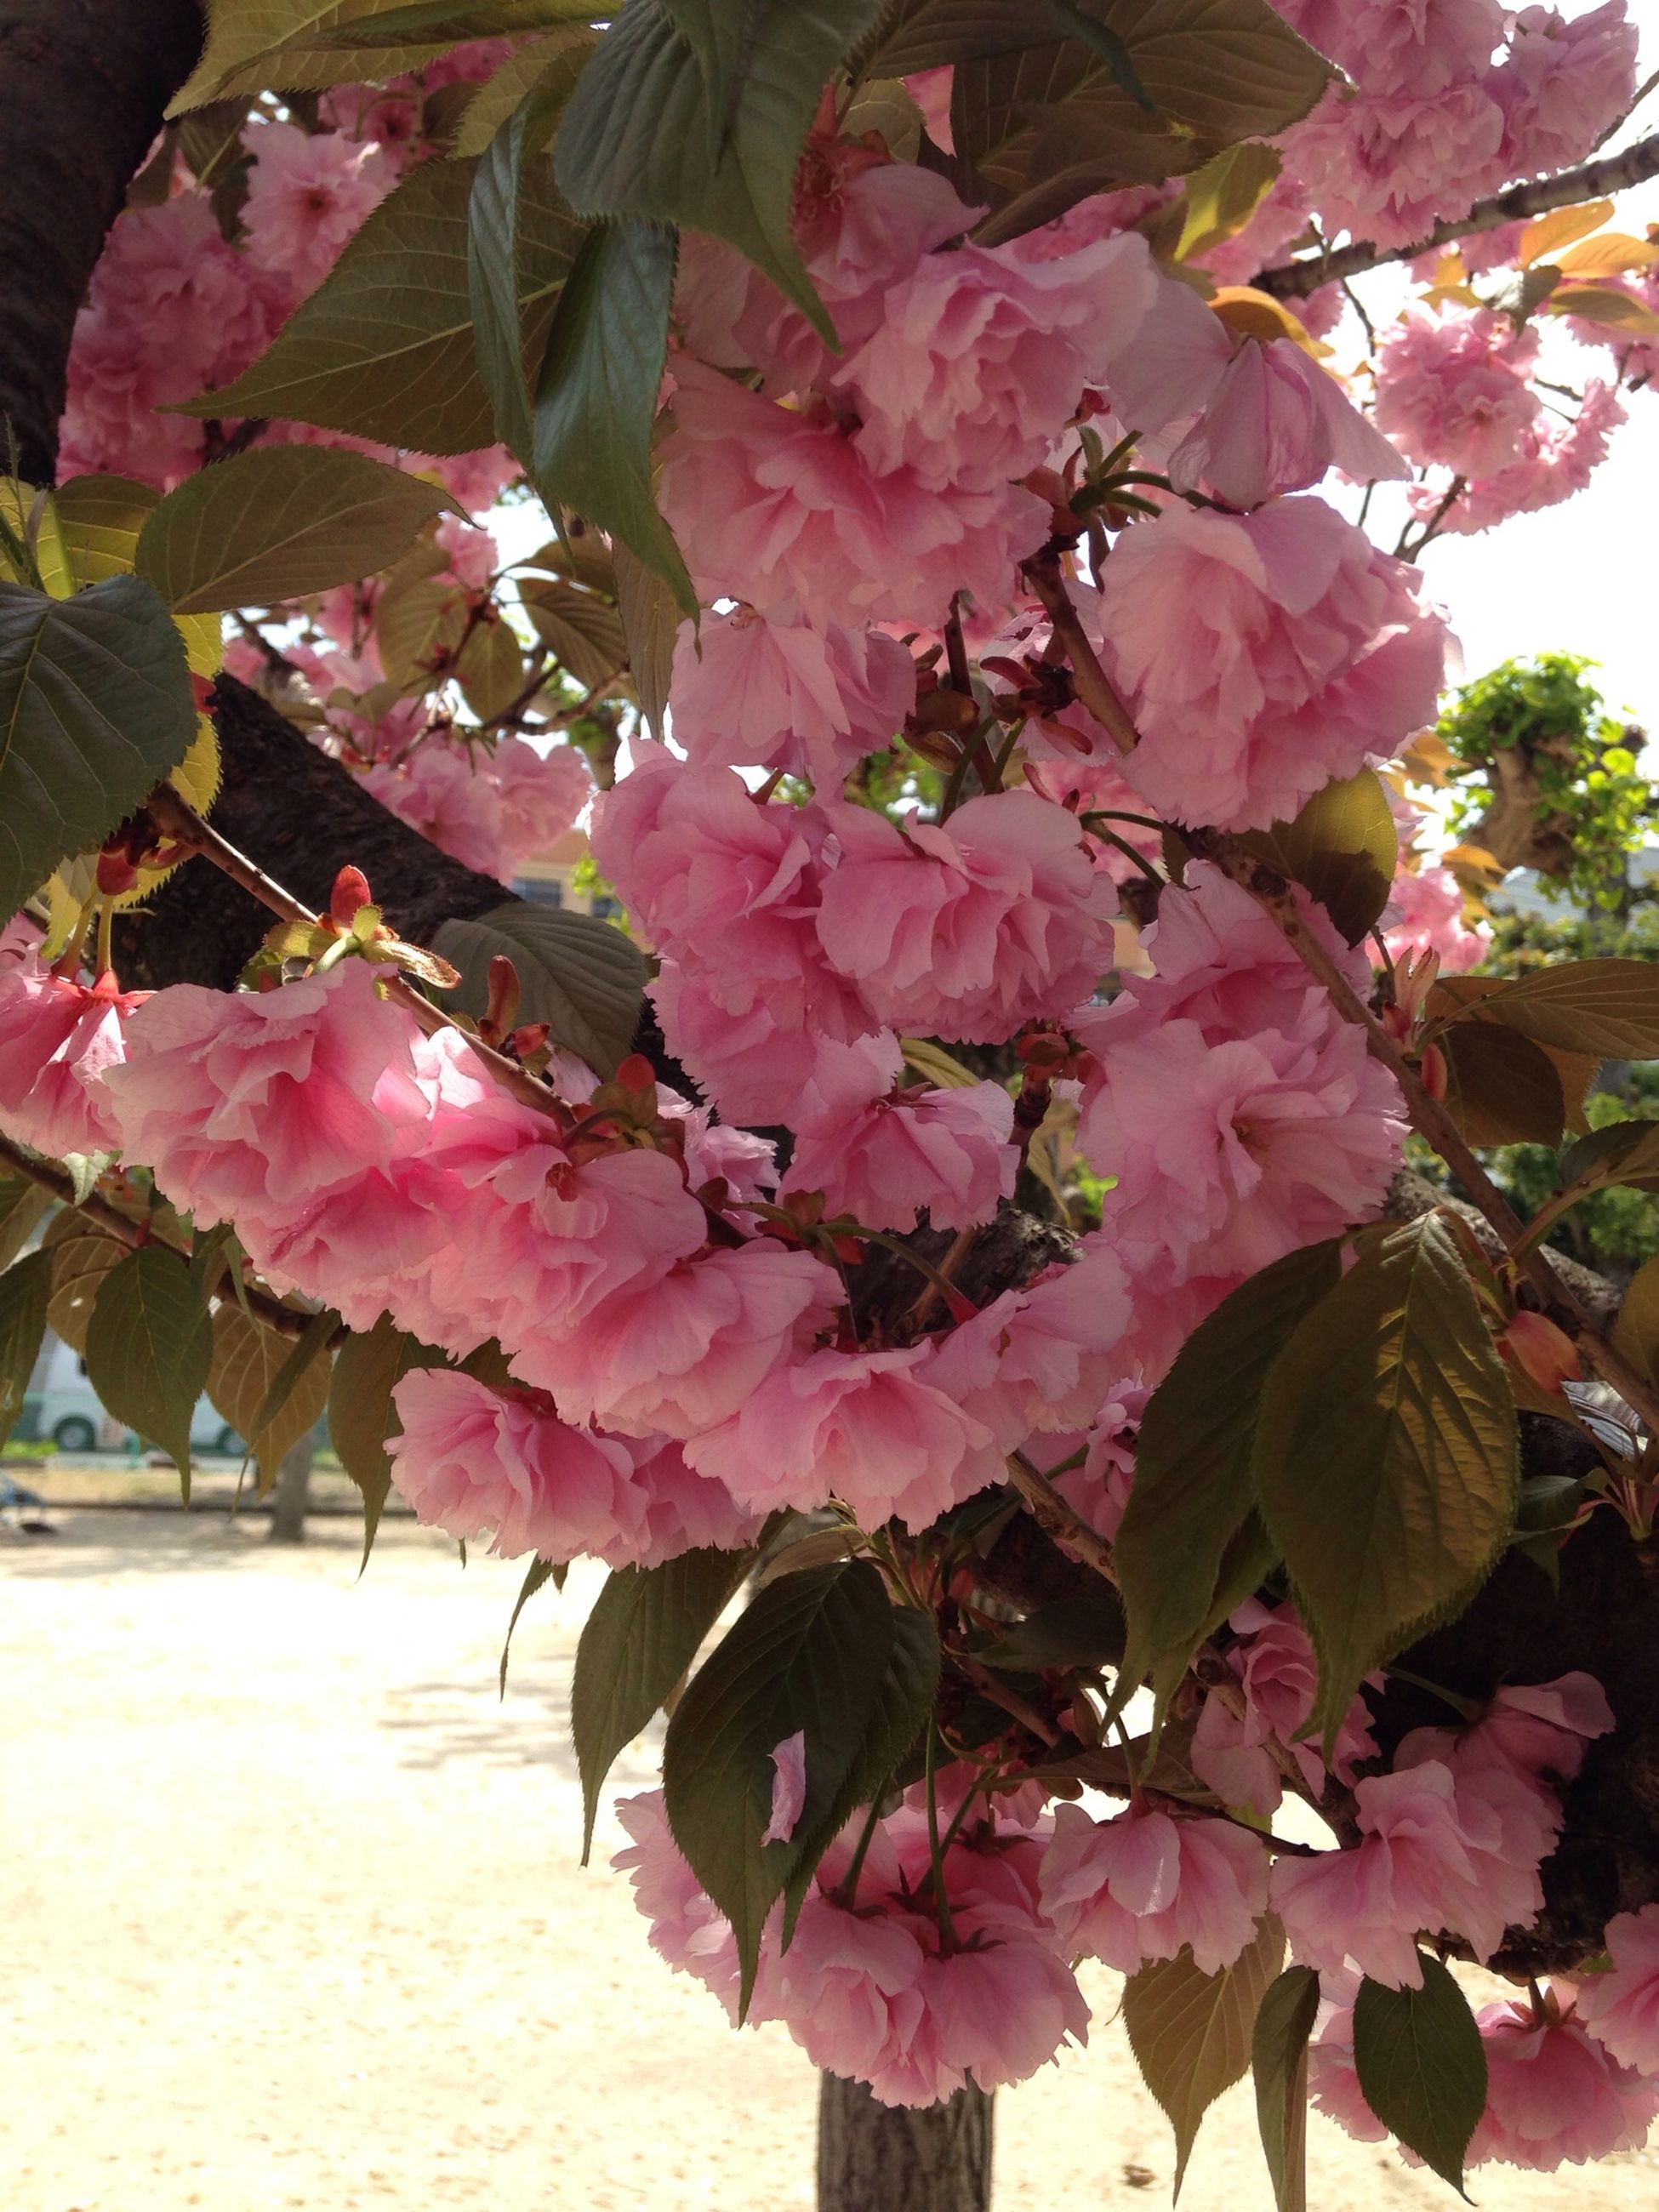 flower, freshness, growth, pink color, beauty in nature, fragility, branch, leaf, nature, tree, blossom, petal, springtime, in bloom, red, pink, season, blooming, close-up, botany